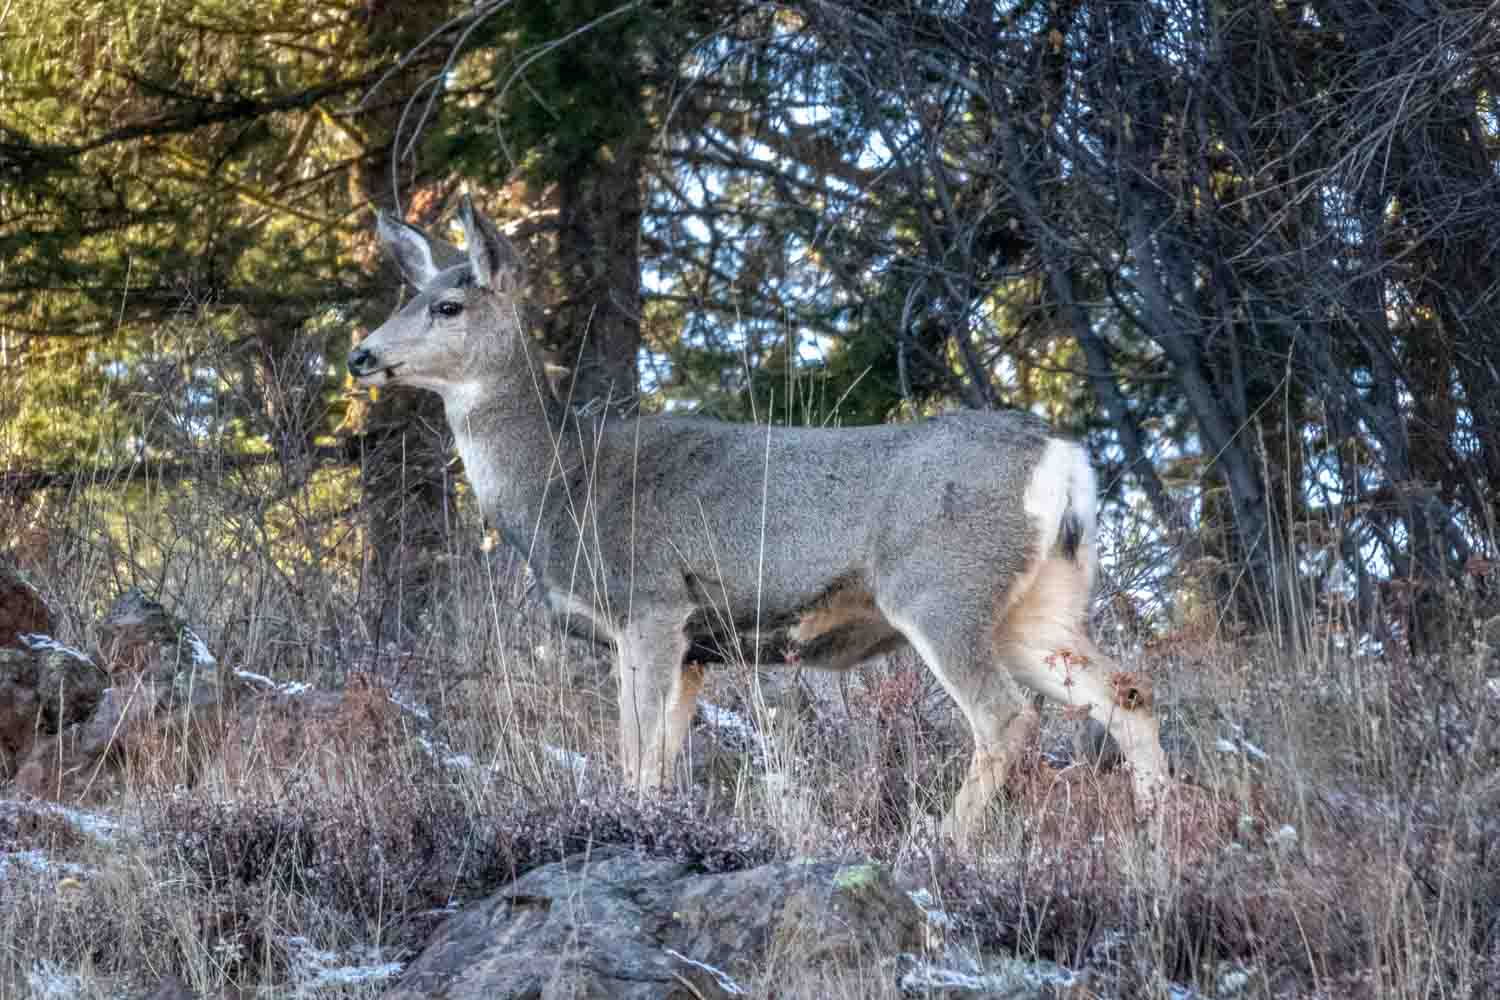 Deer along Hells Canyon Scenic Byway - Photo by Ron Huckins